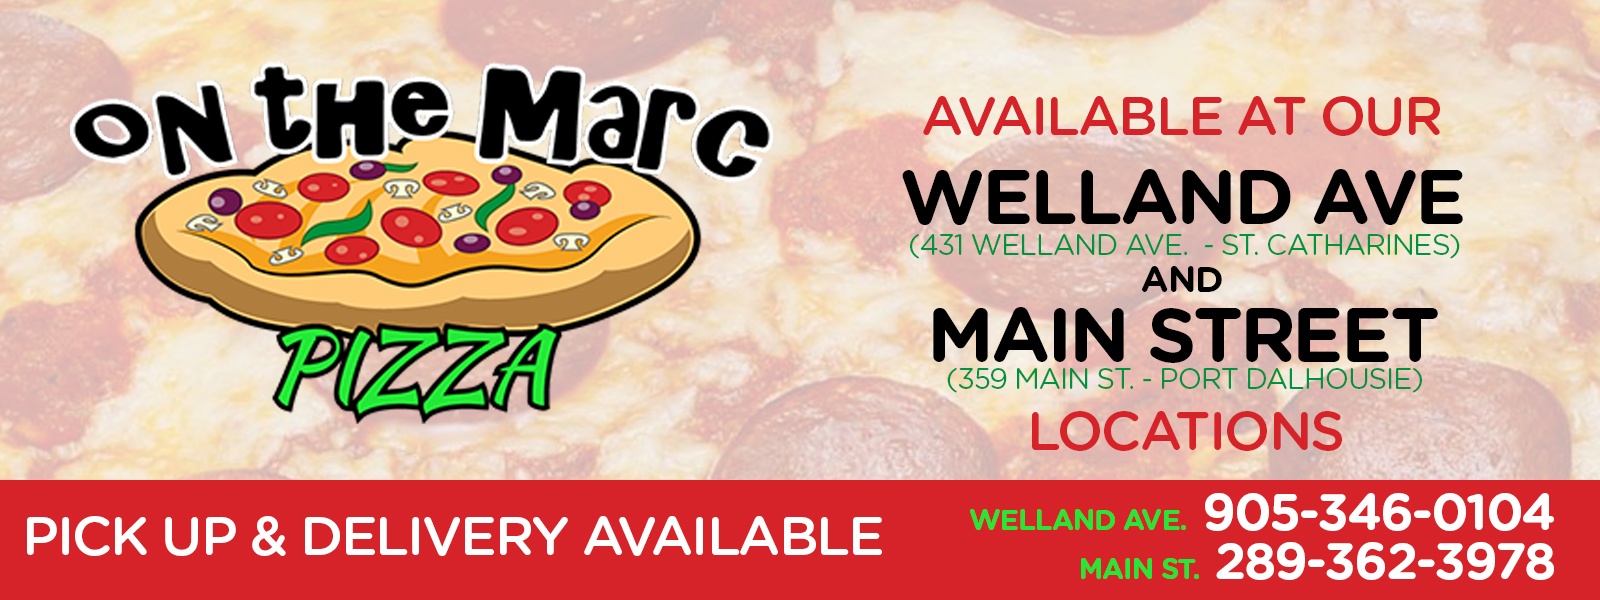 On The Marc Pizza